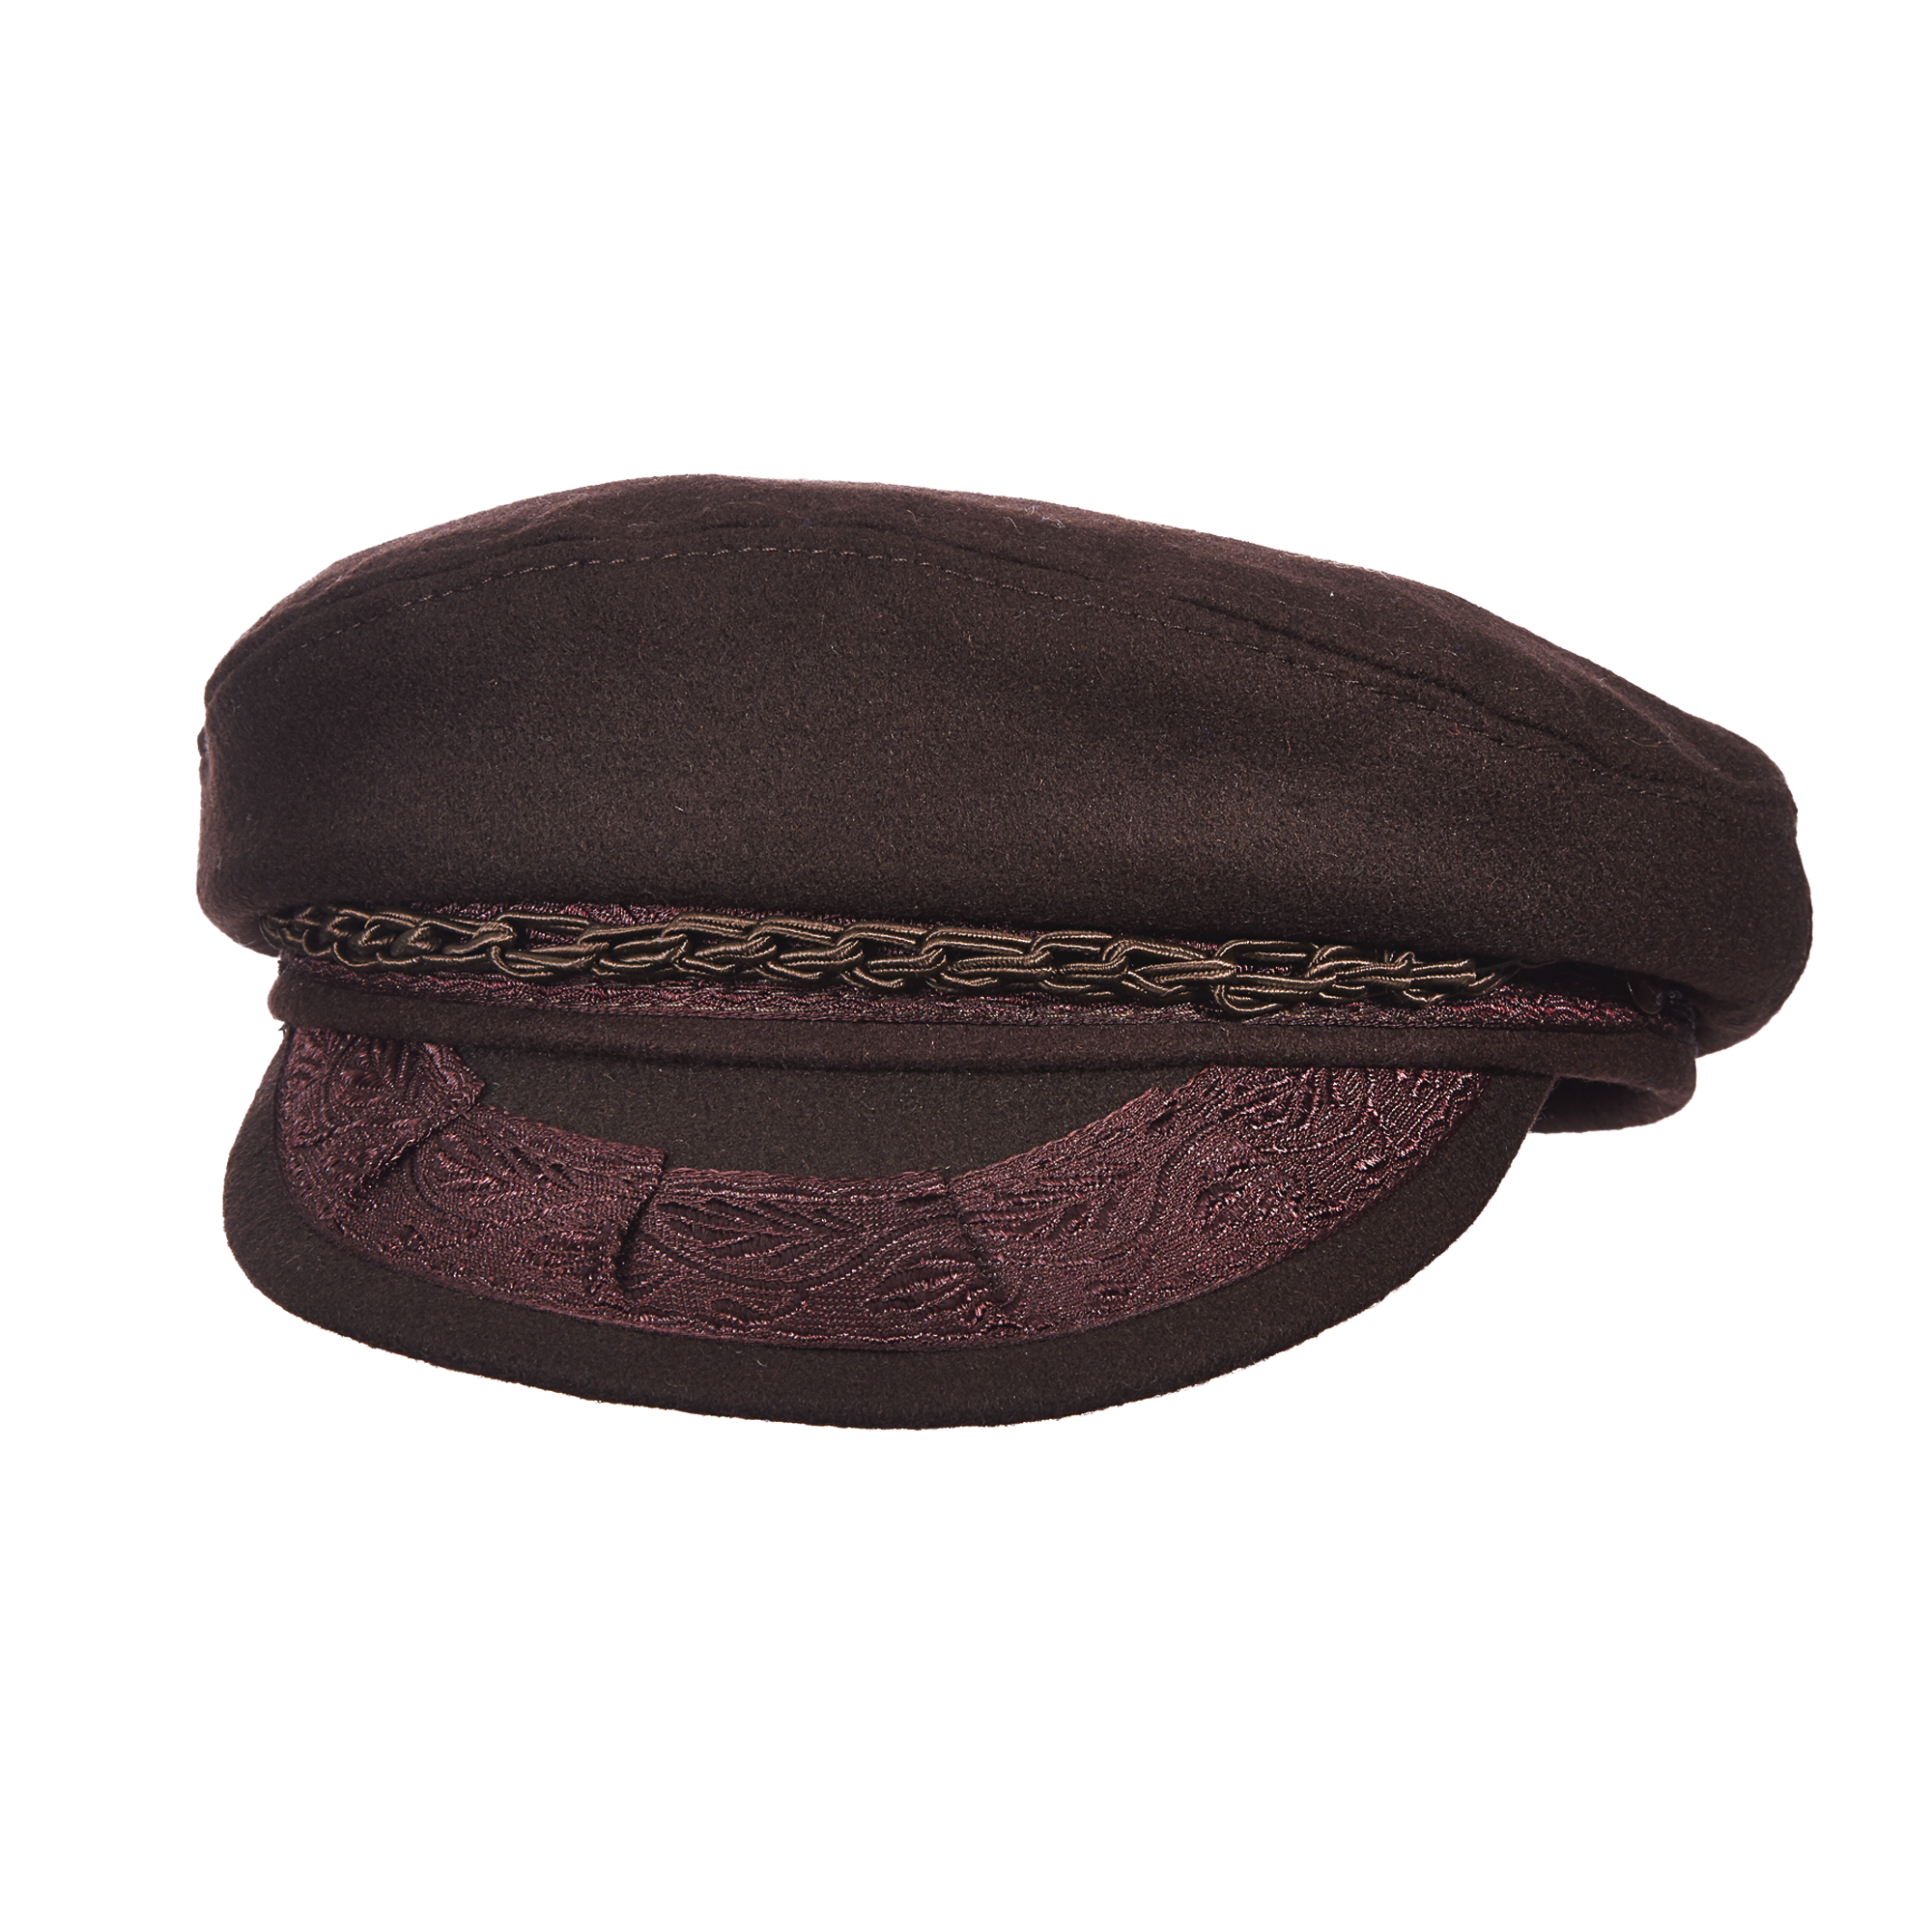 Image of Aegean Size 6 7/8 Mens Greek Wool Fishermans Hat, Brown